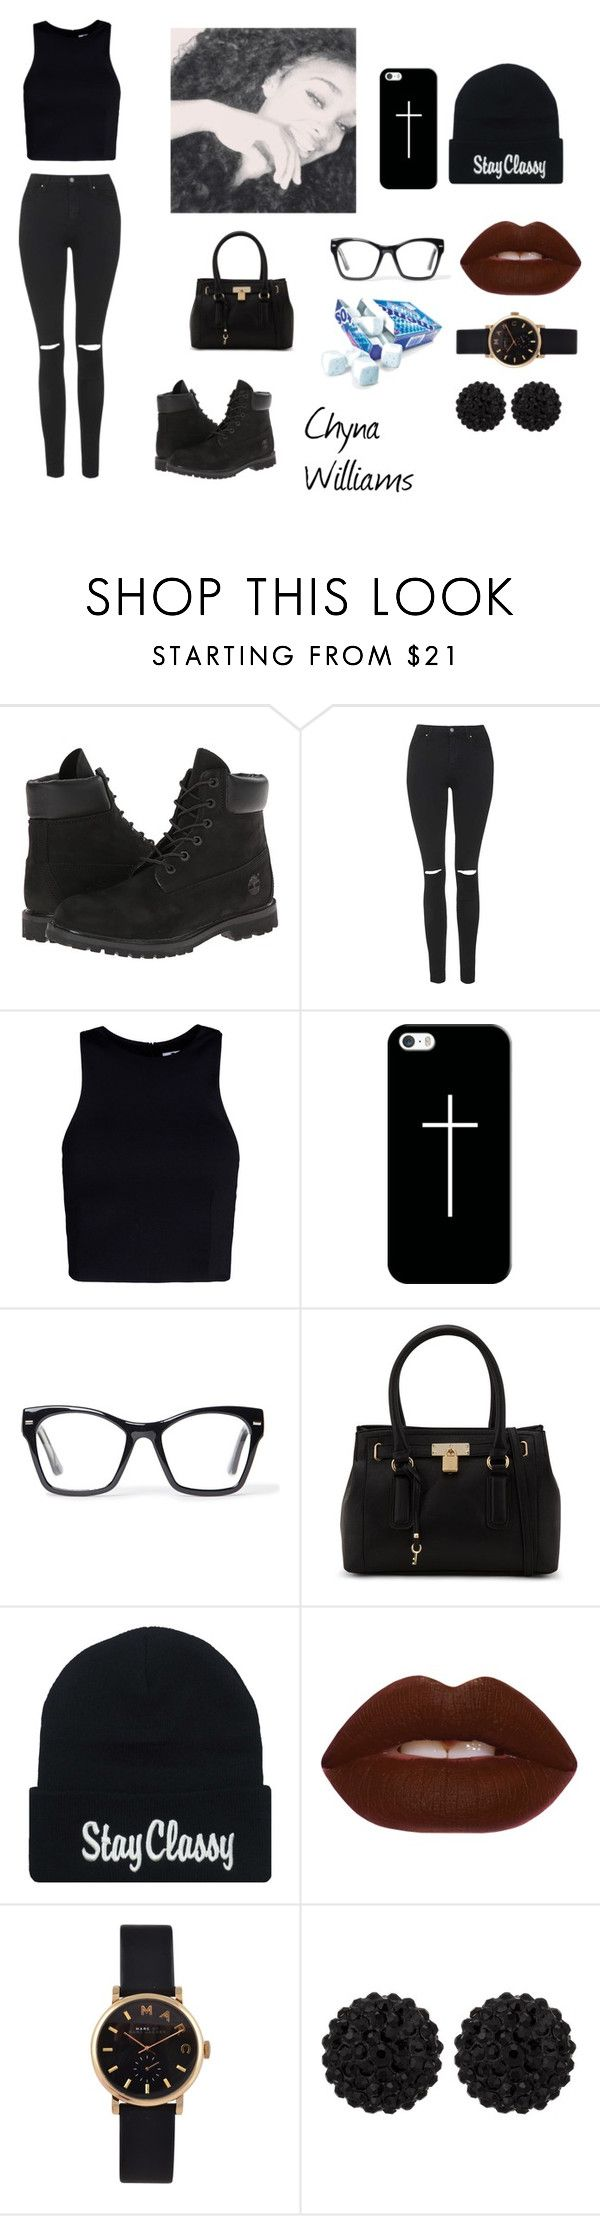 """""""Outfit # 2 Black Everything"""" by diamondslove ❤ liked on Polyvore featuring Timberland, Topshop, T By Alexander Wang, Casetify, Spitfire, ALDO, Lime Crime, Marc by Marc Jacobs and sweet deluxe"""